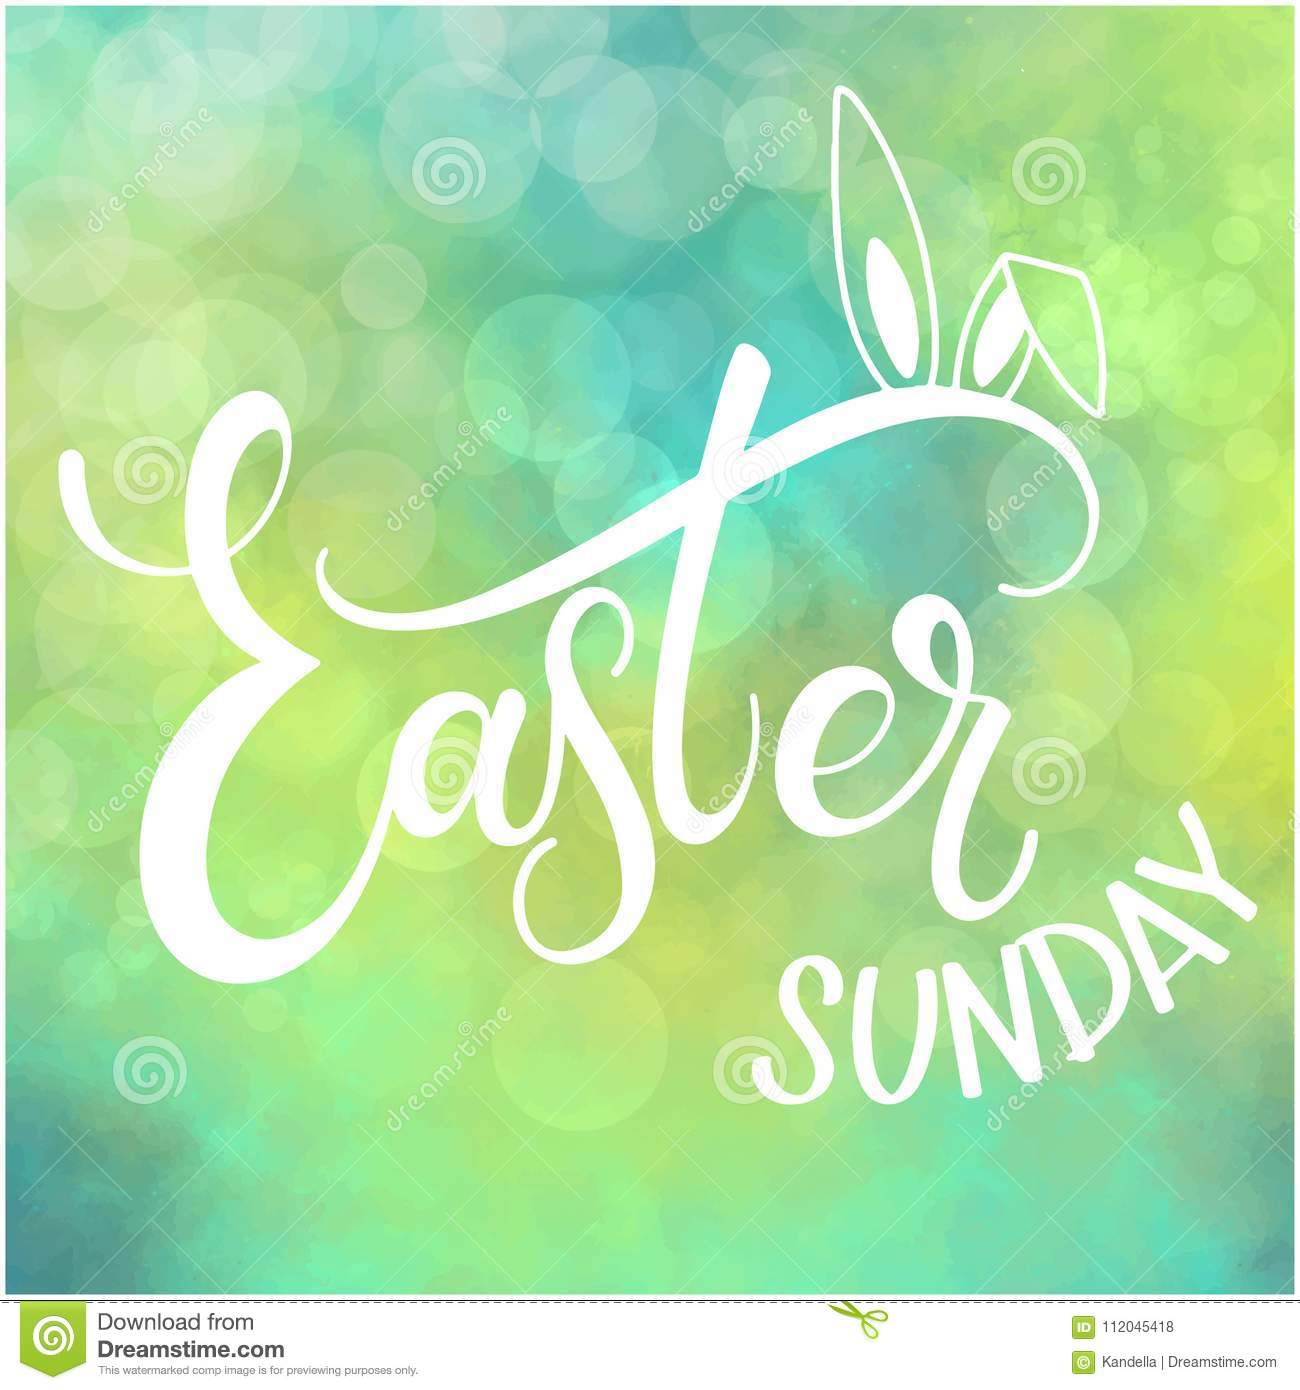 Happy Easter Sunday Colorful Lettering Stock Vector Illustration